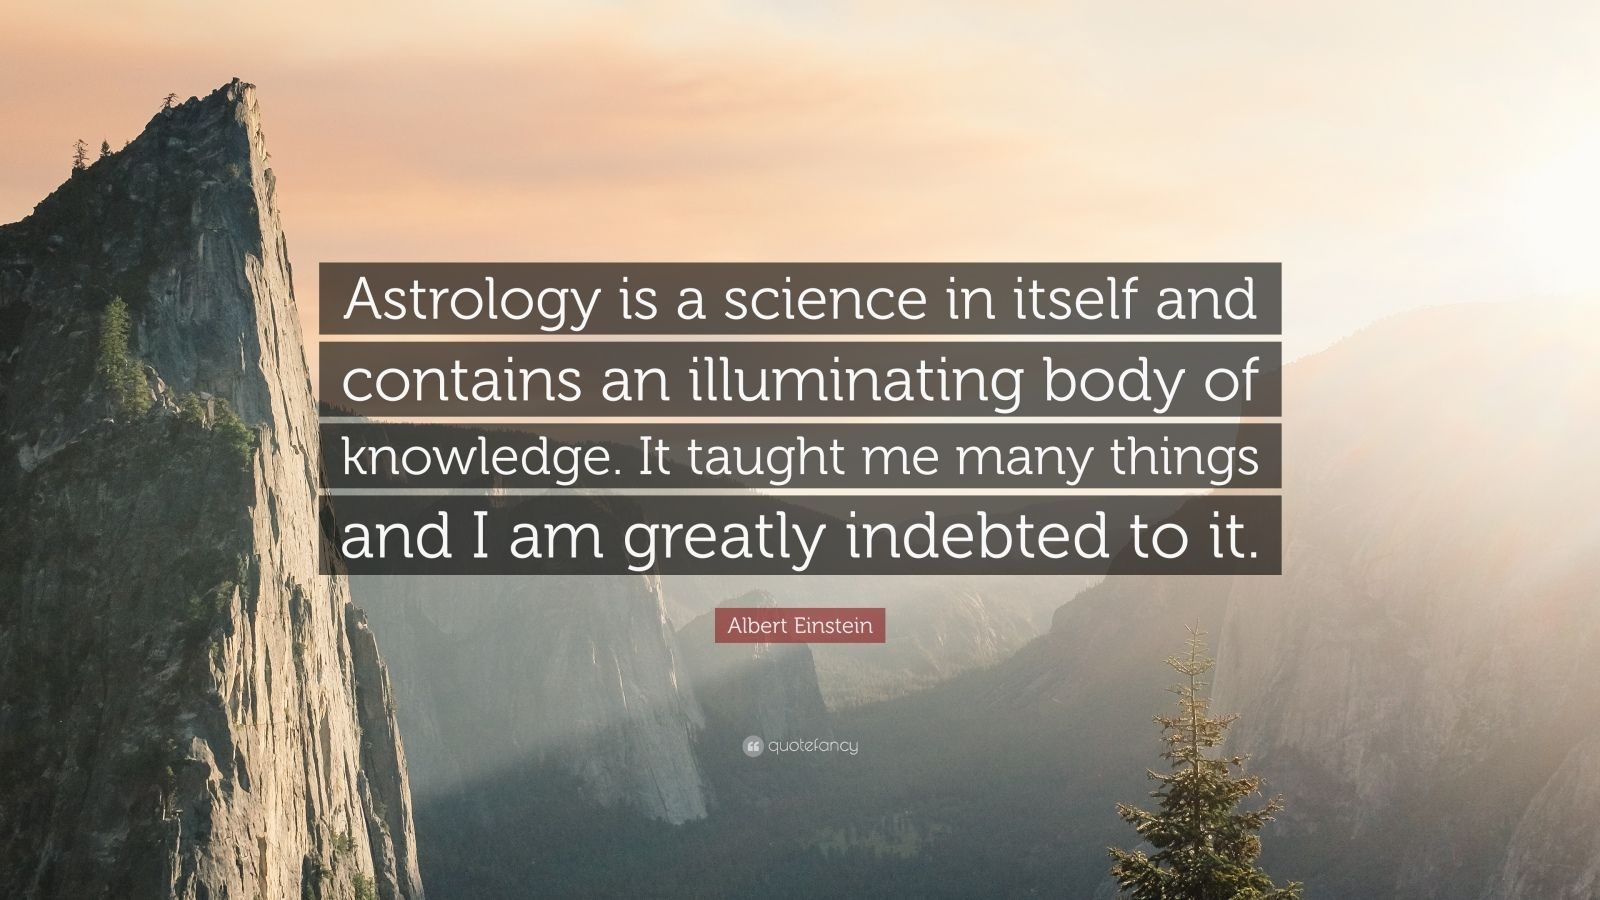 """Albert Einstein Quote: """"Astrology is a science in itself and contains an illuminating body of knowledge. It taught me many things and I am greatly indebted to it."""""""